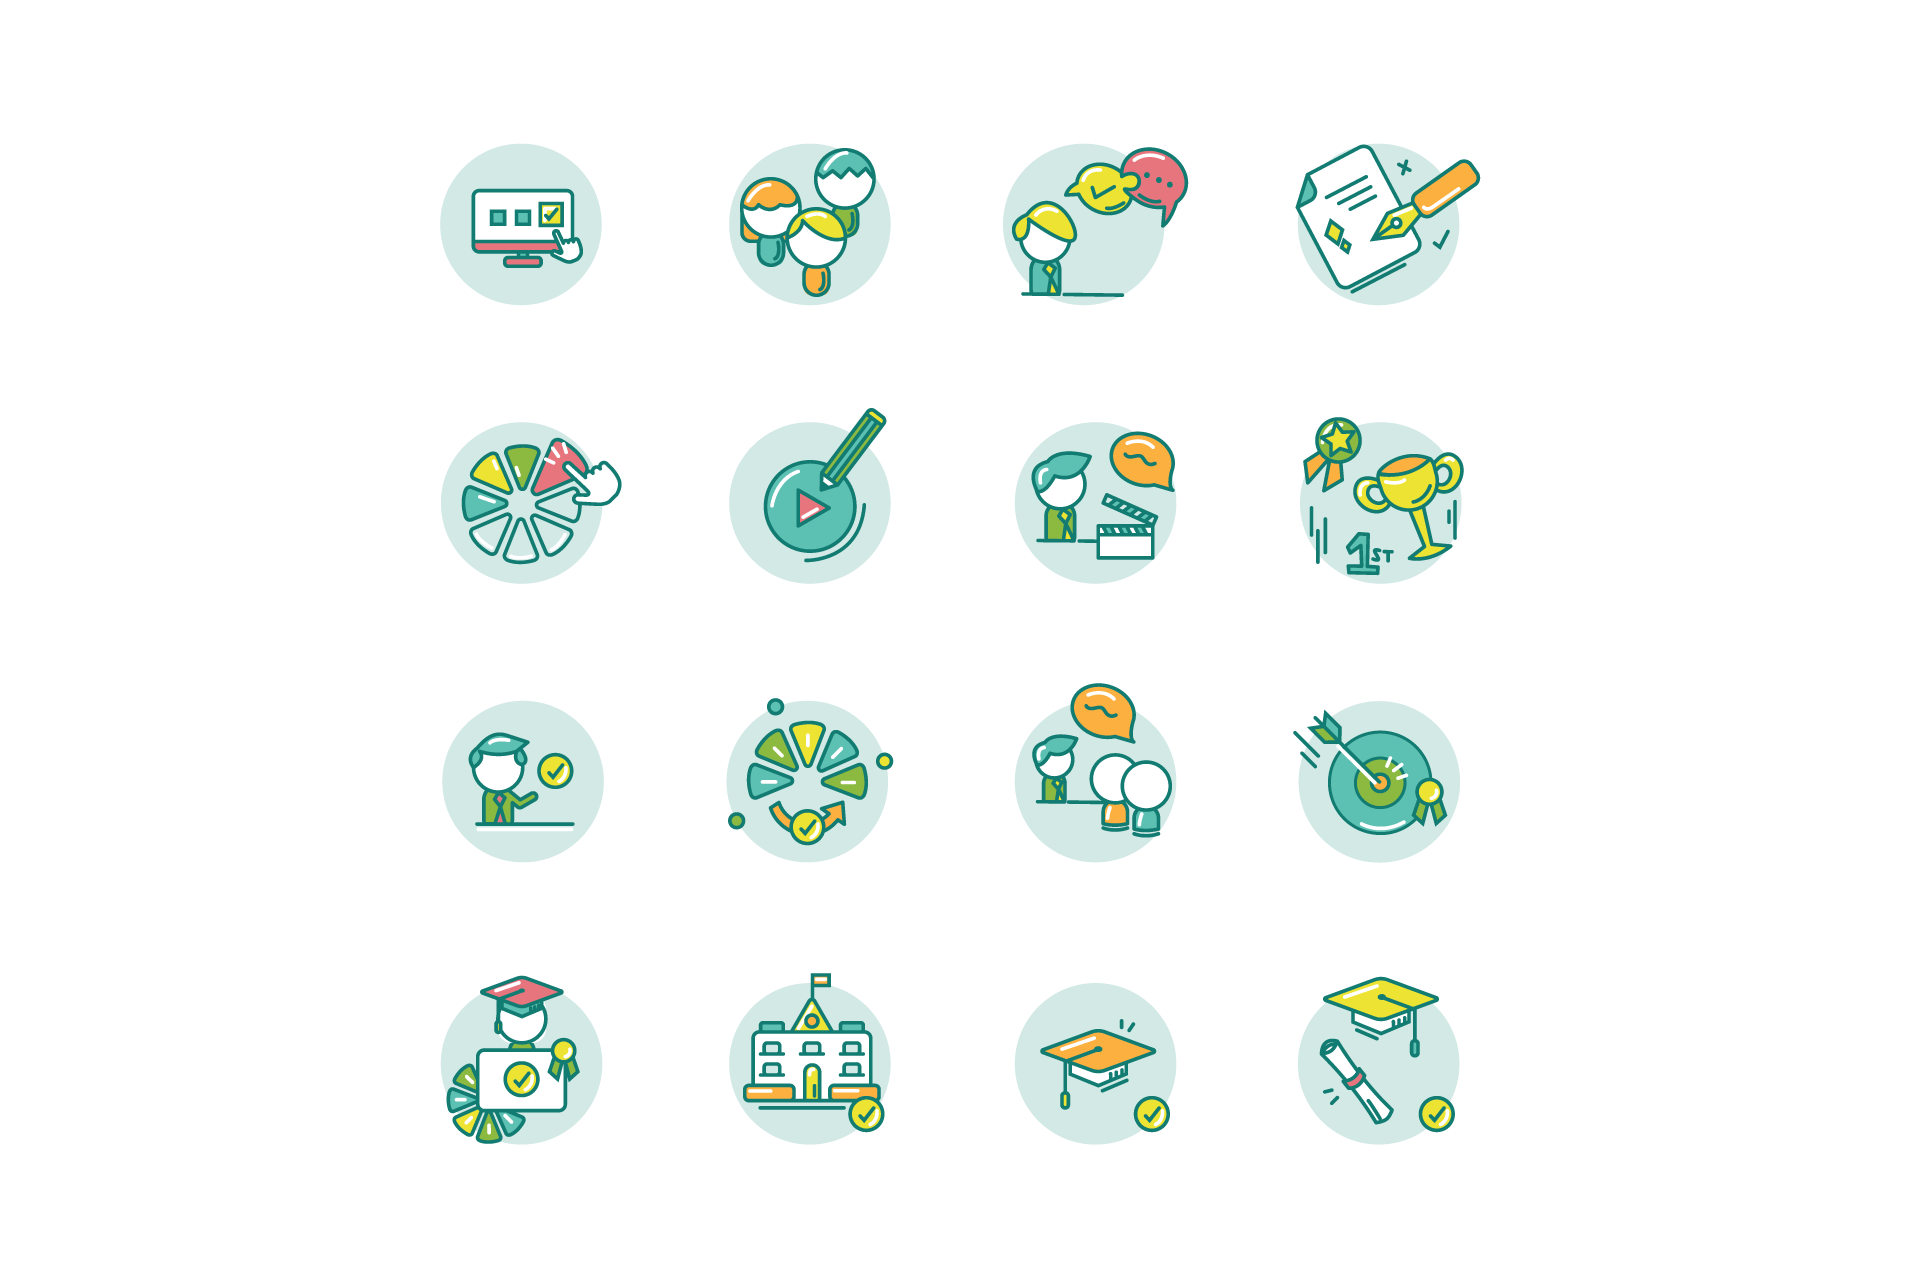 cheersyou-icon-set2.png